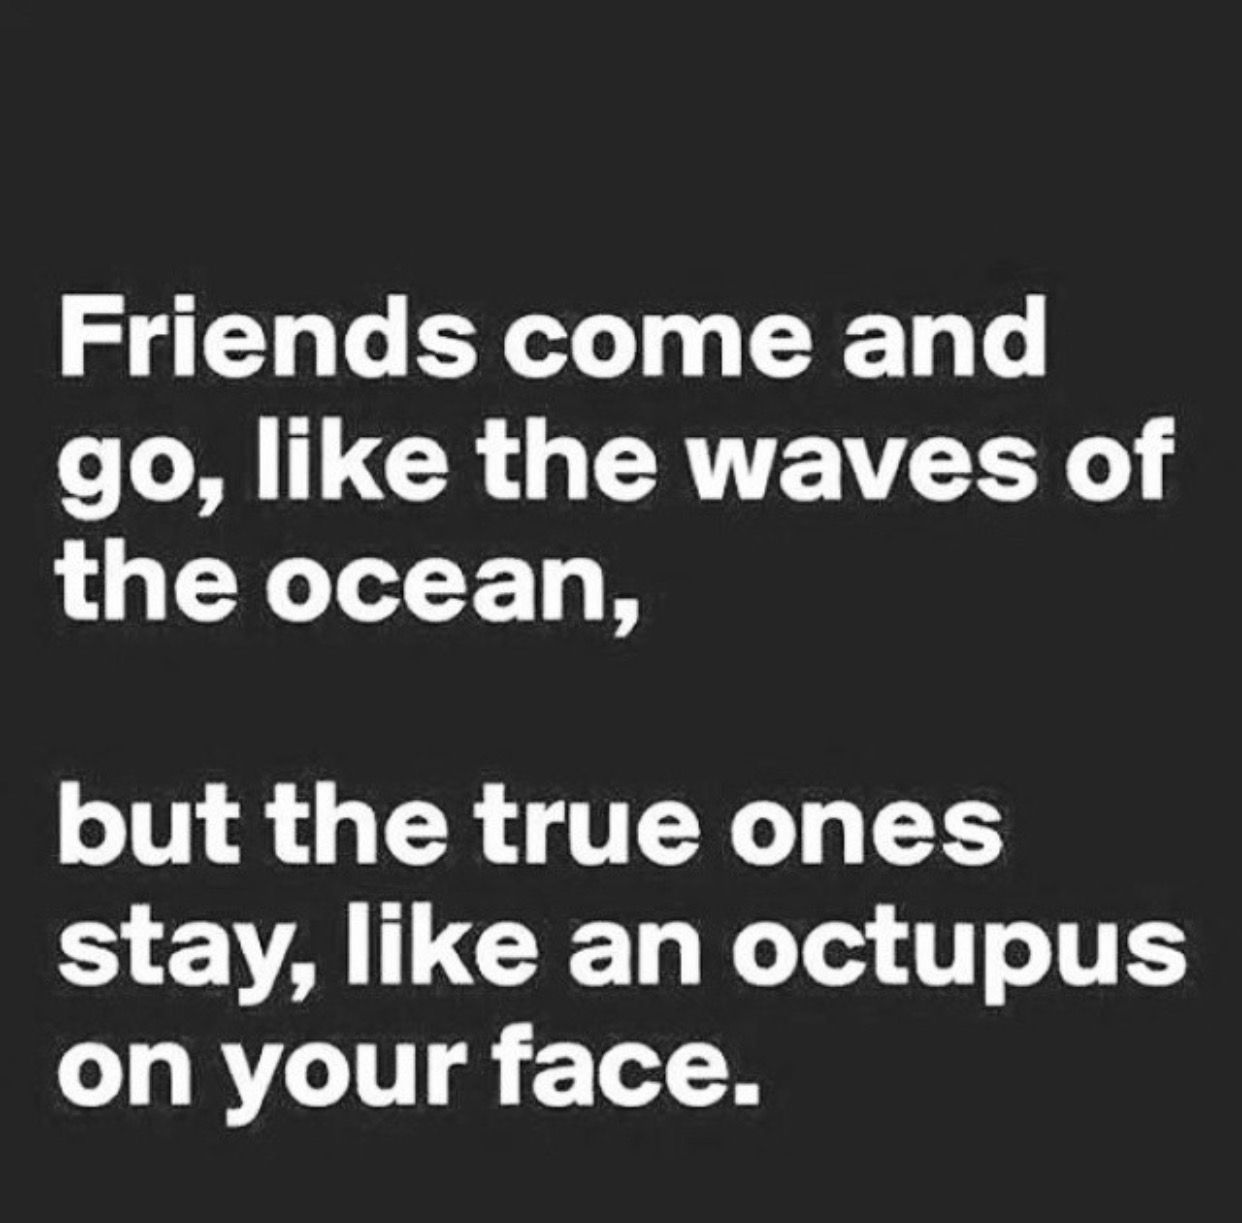 Funny Friendship Quotes Pingabrijel Gales On Quotes  Pinterest  Friendship And Wisdom